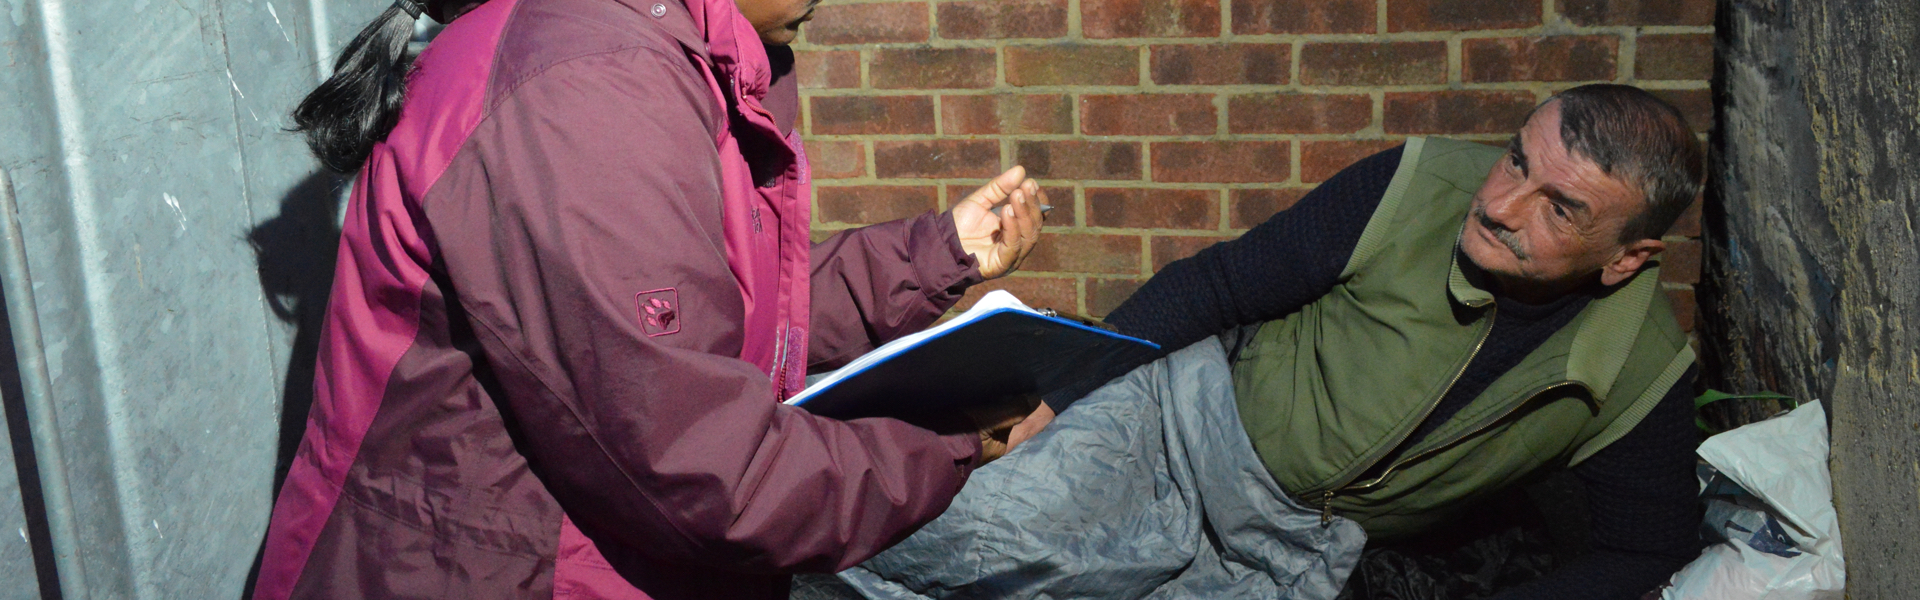 Image: Outreach worker and person sleeping rough